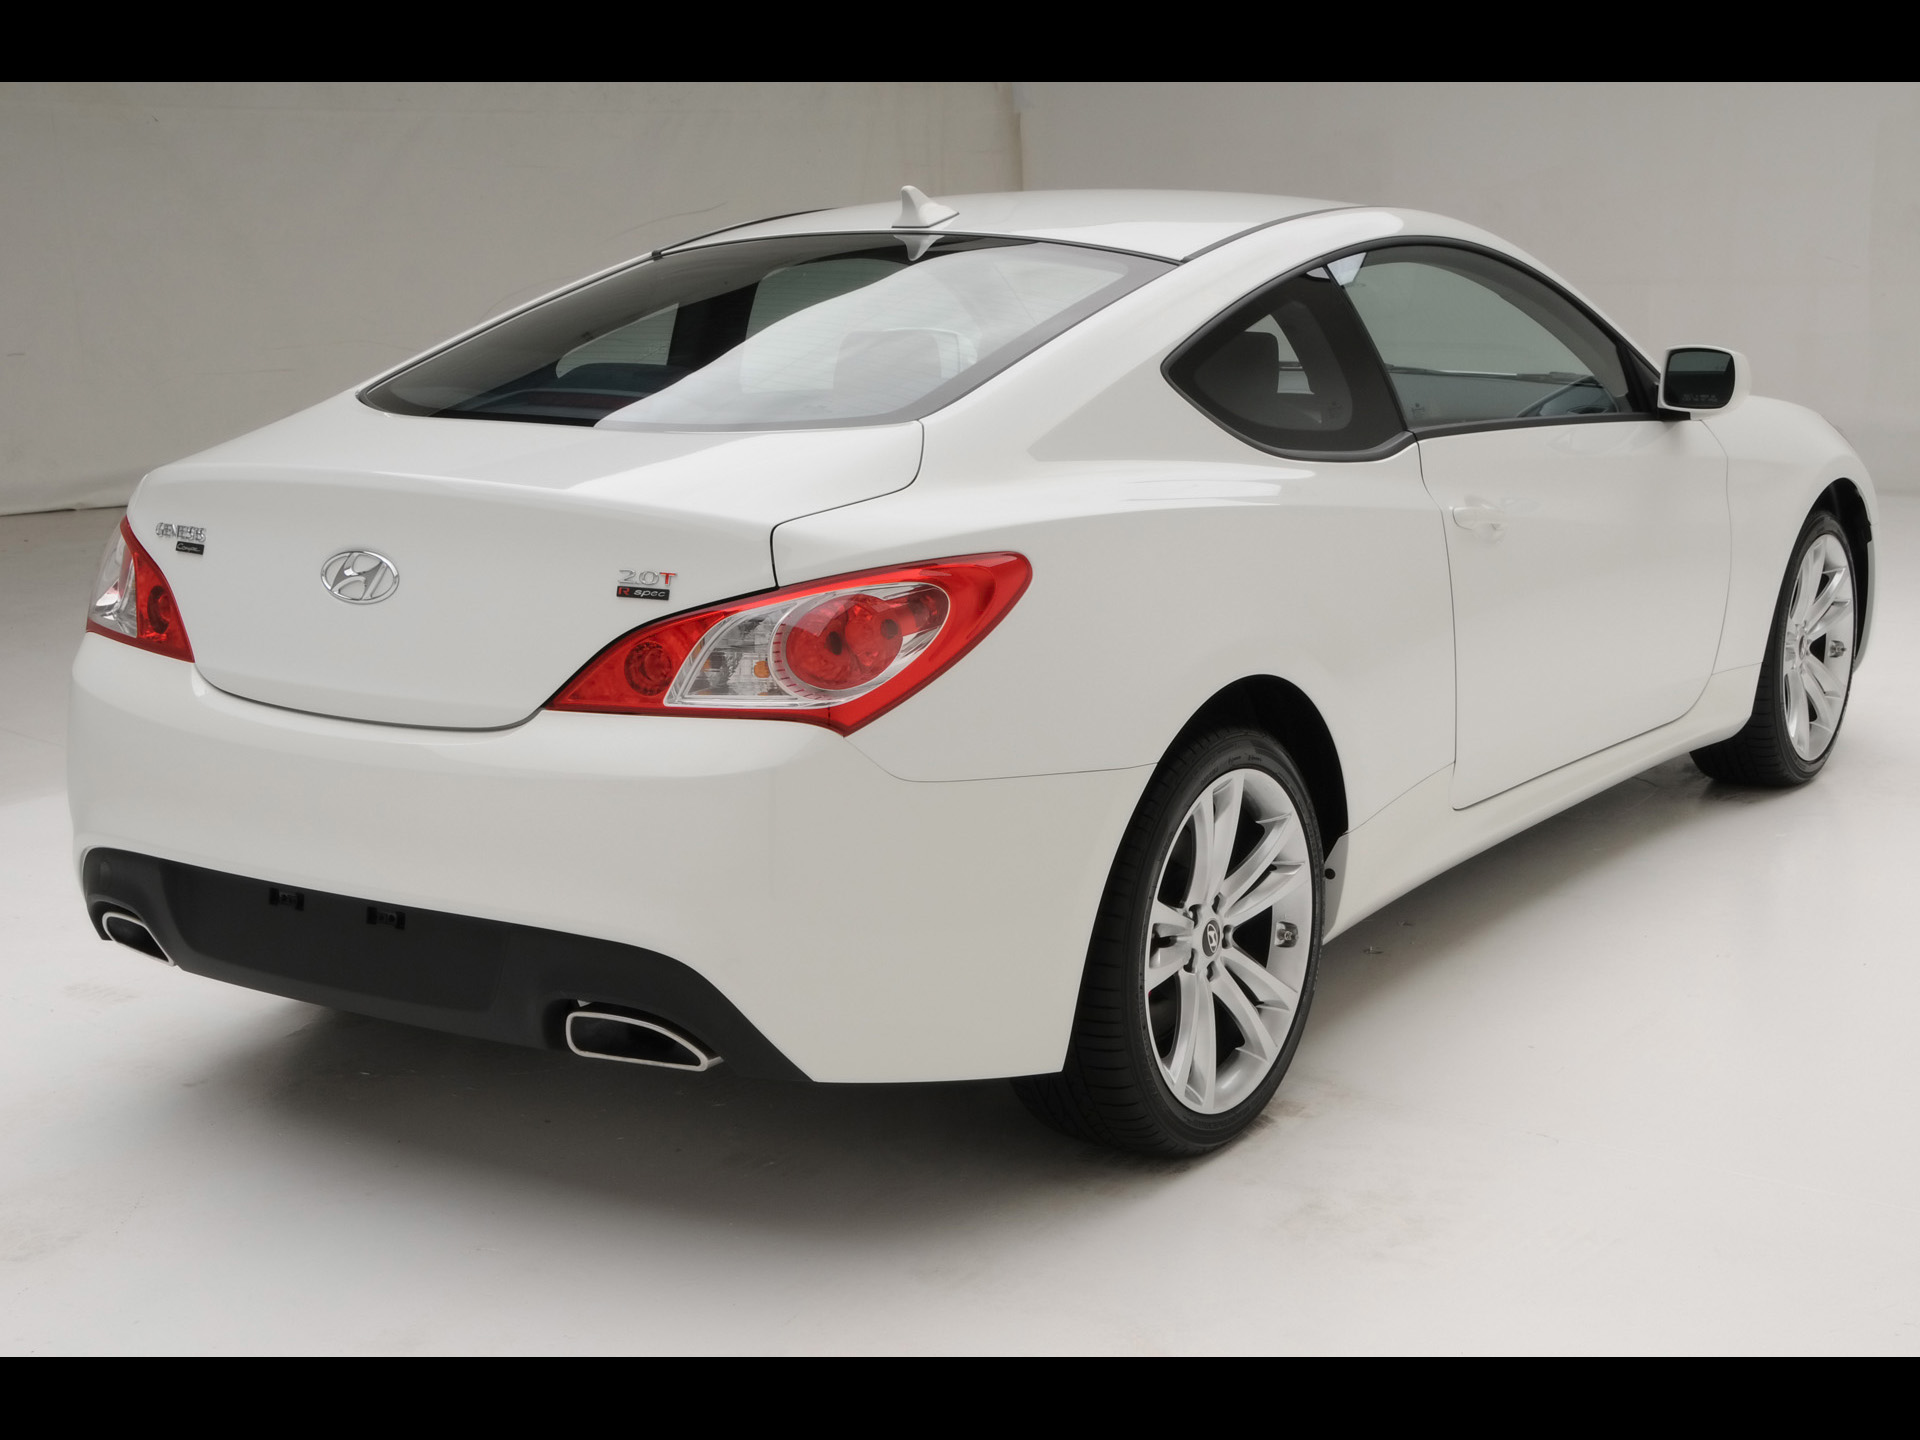 2010 Hyundai Genesis Coupe R-Spec - Rear Angle 3 - 1920x1440 - Wallpaper